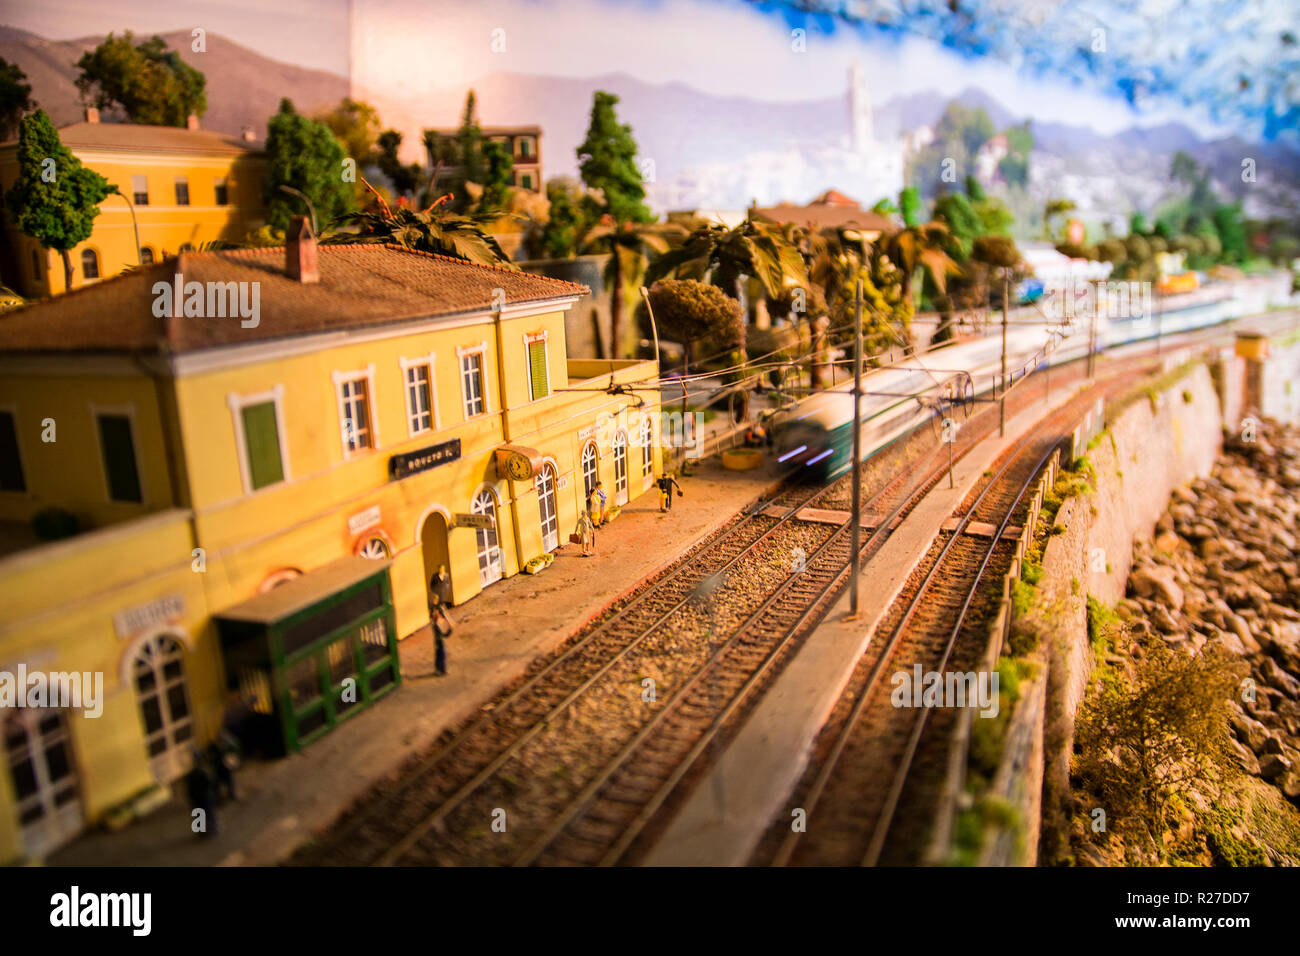 Model of small railway station with train approaching - Stock Image